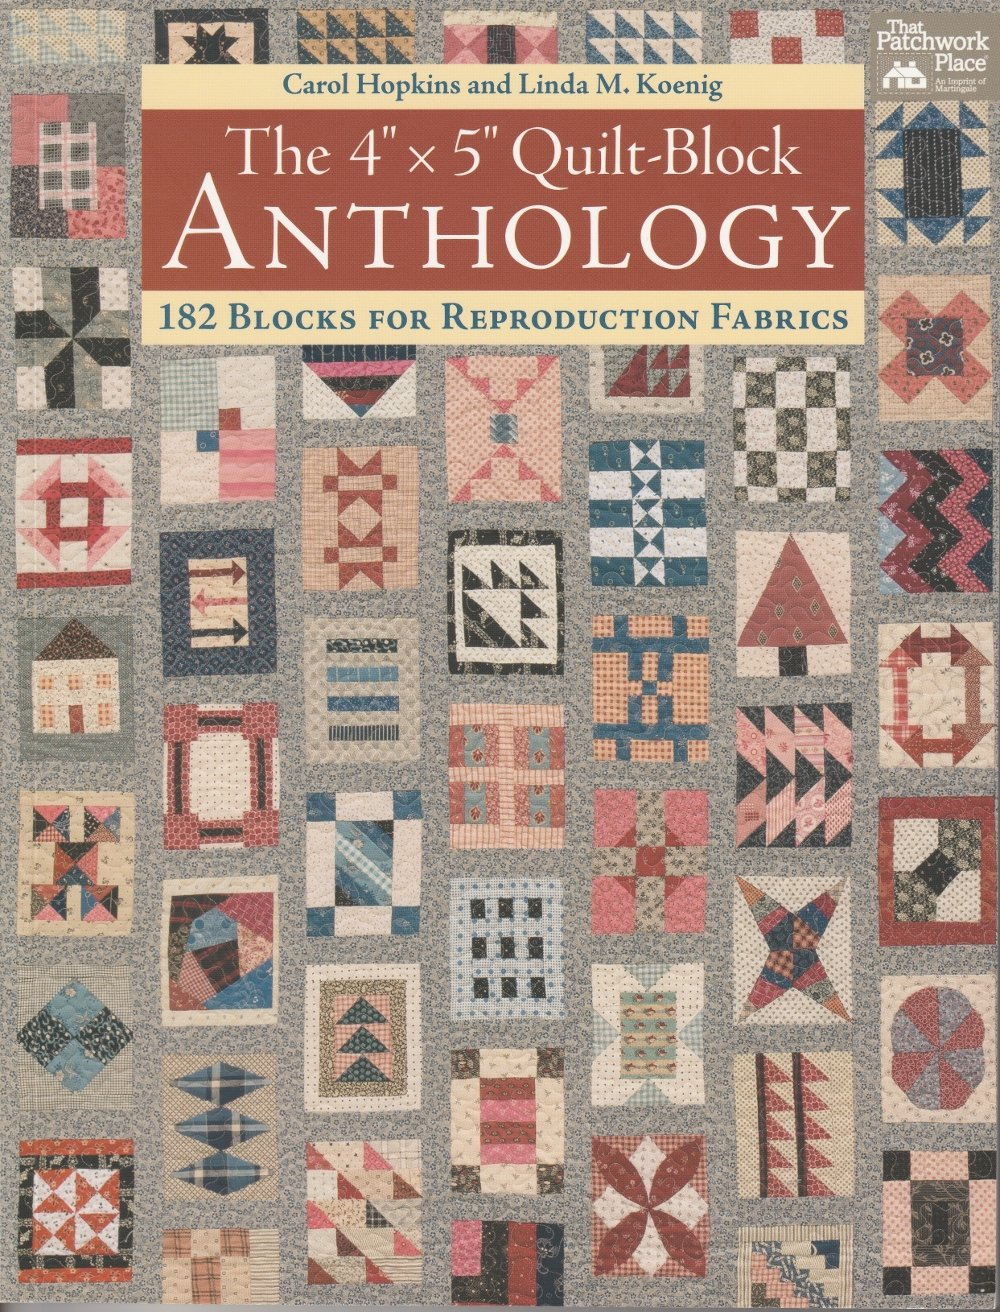 The 4 x 5 Quilt-Block Anthology Book